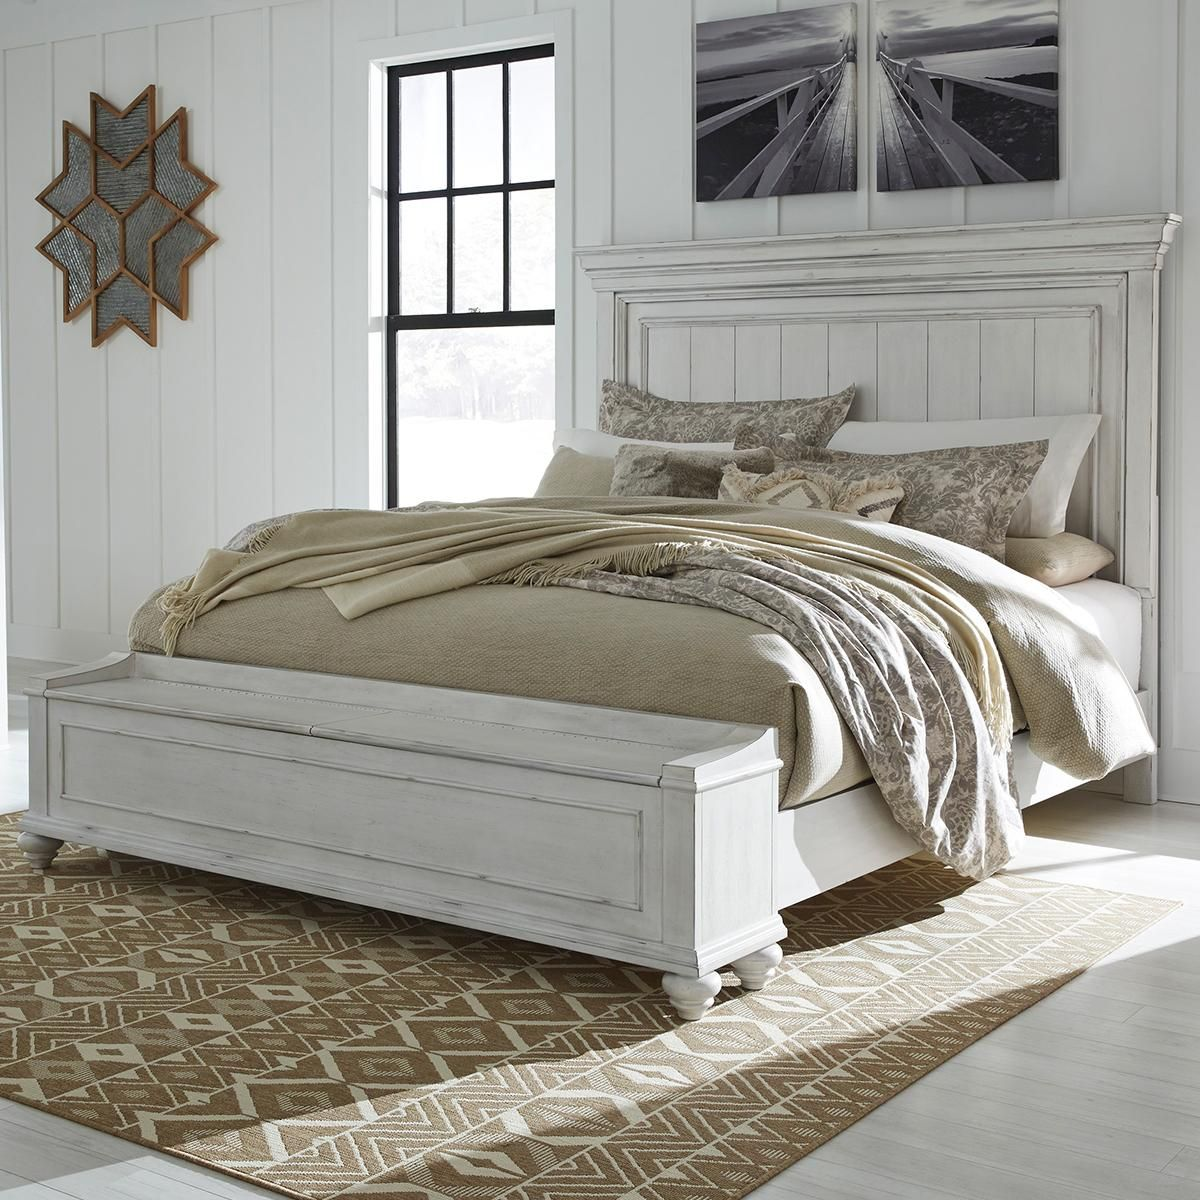 Signature Design by Ashley Kanwyn Queen Storage Bed in